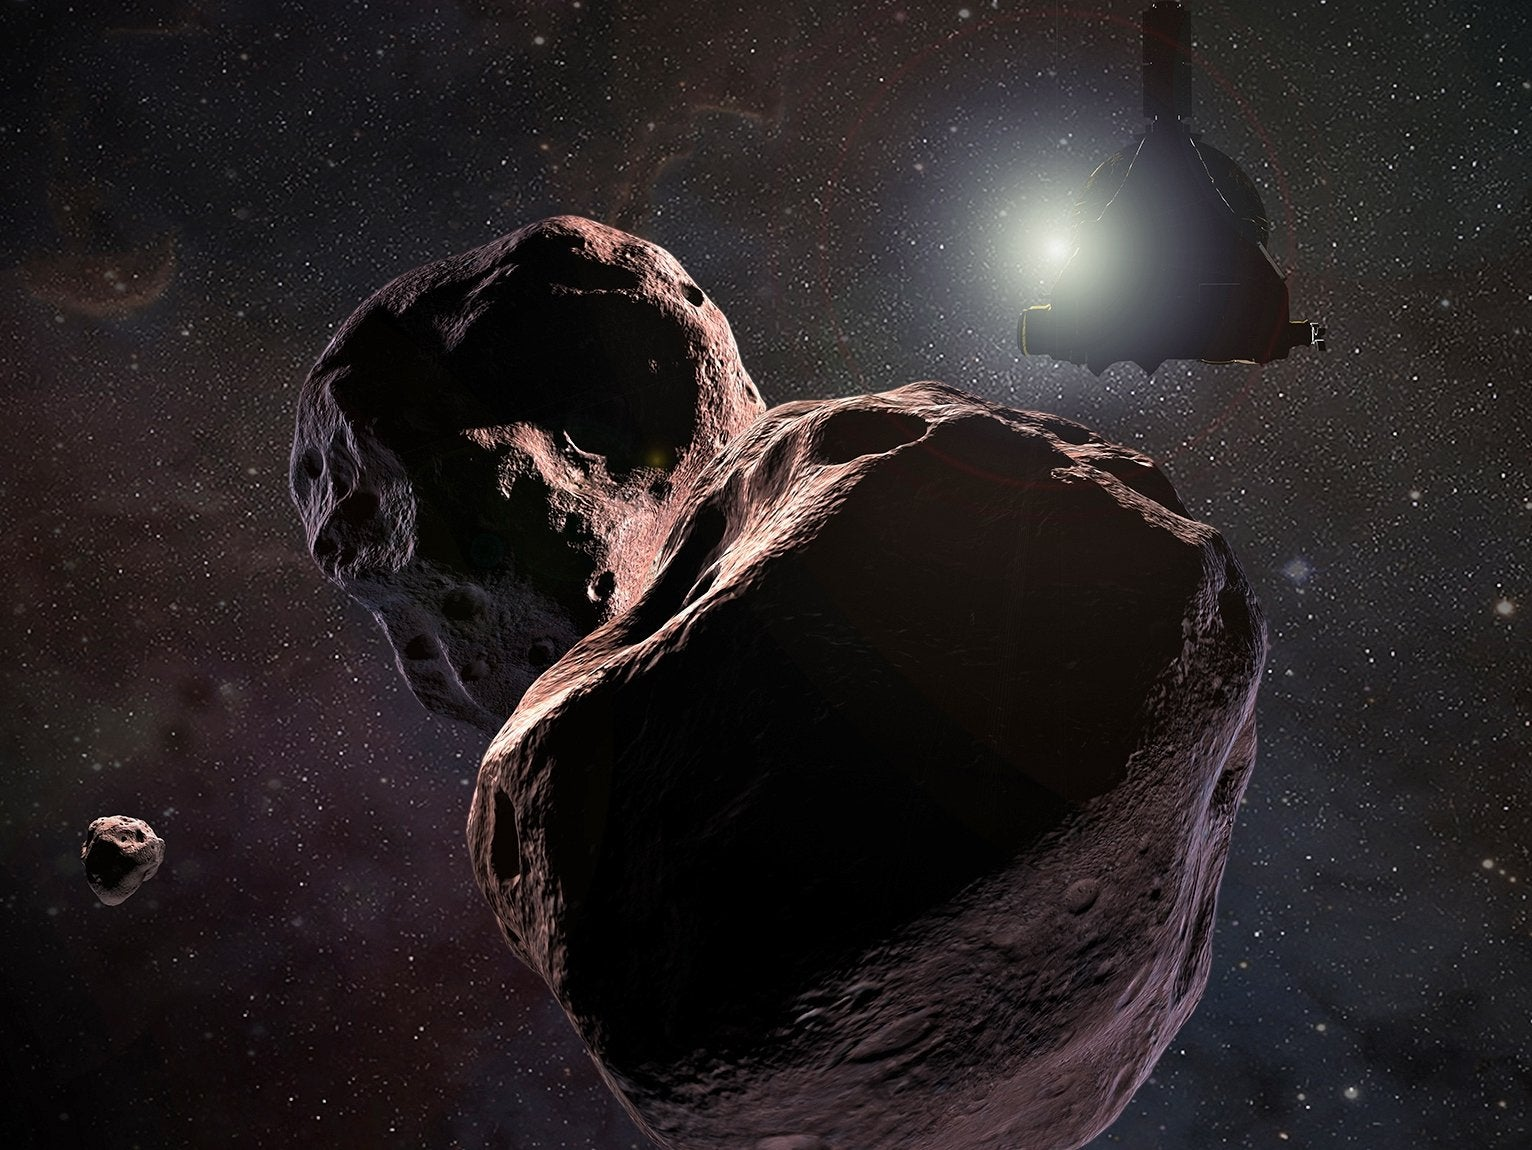 Nasa renames solar system object previously known as 'Ultimate Thule' to 'Arrokoth' after Nazi controversy